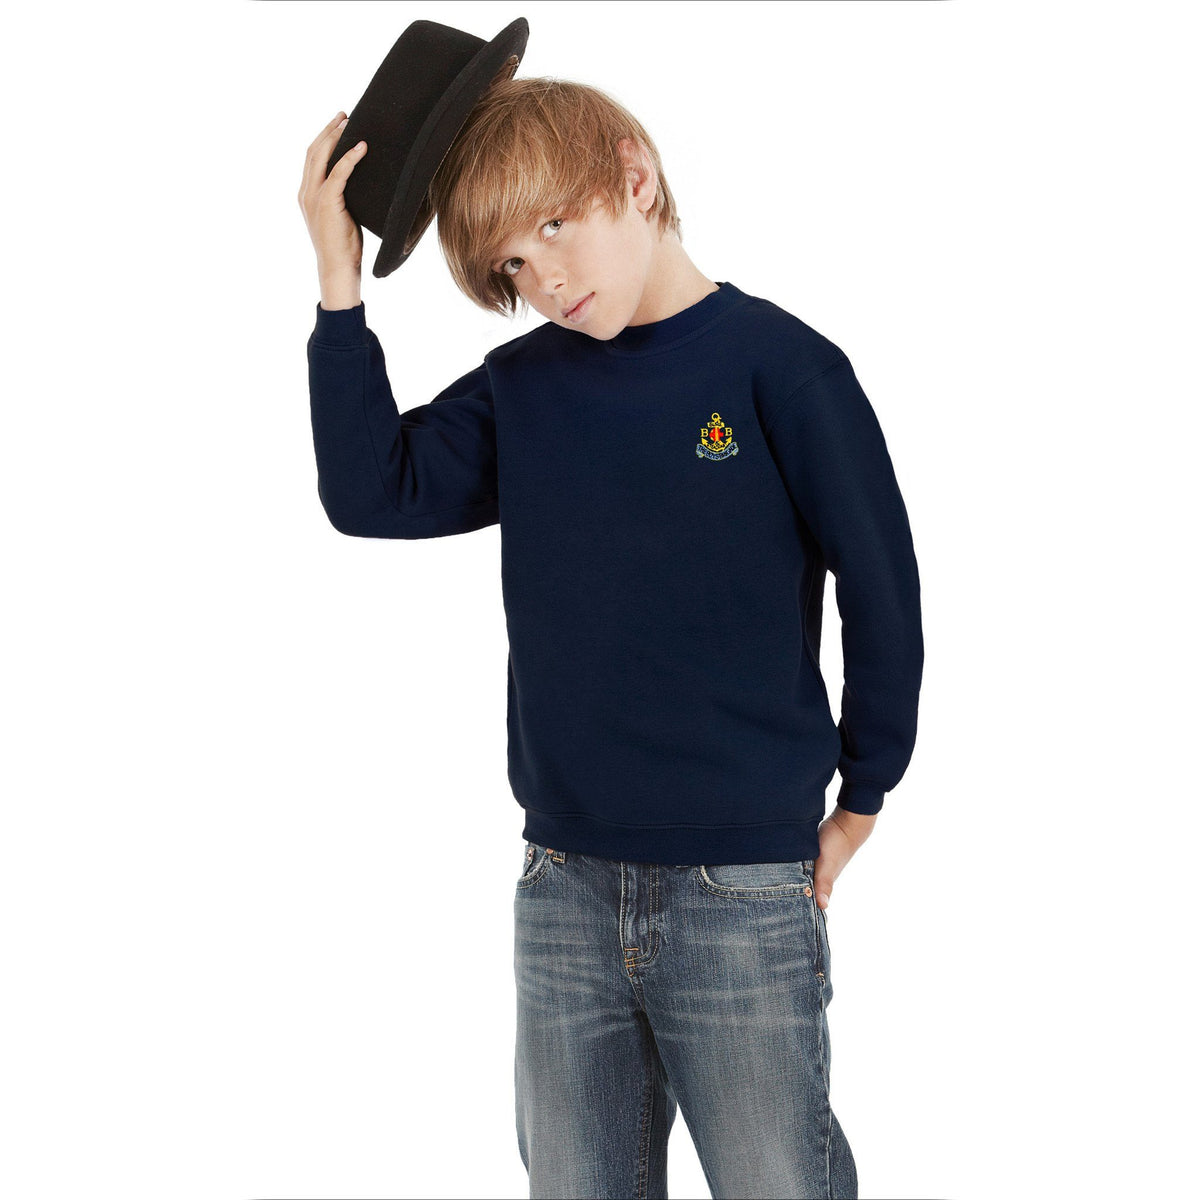 BB Alproso Sweat Shirt Boy's Sweat Shirt Image Navy 9-10 Years(30)